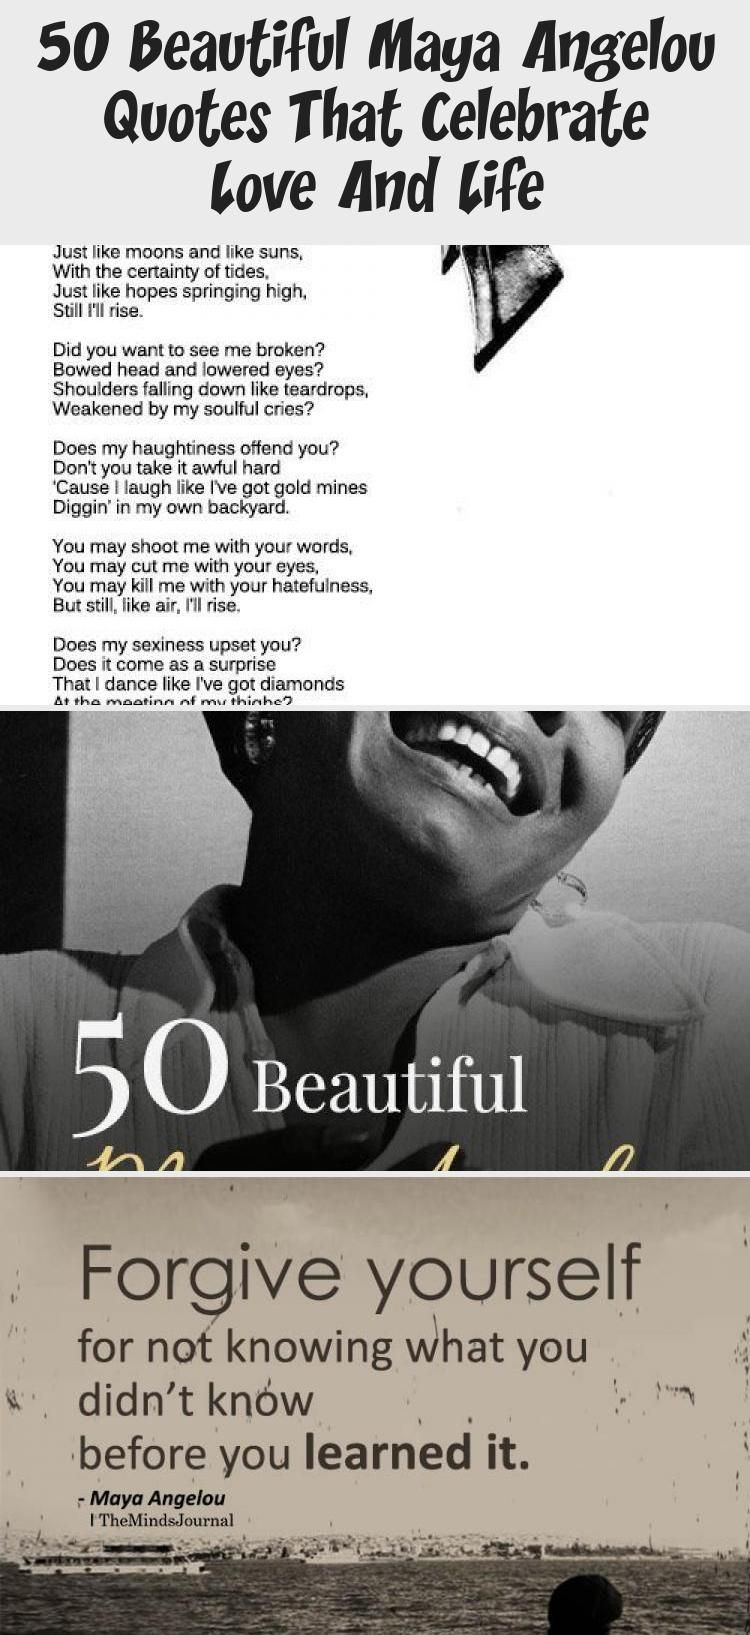 My Blog Love Quotes Funny Maya Angelou Quotes Love Quotes